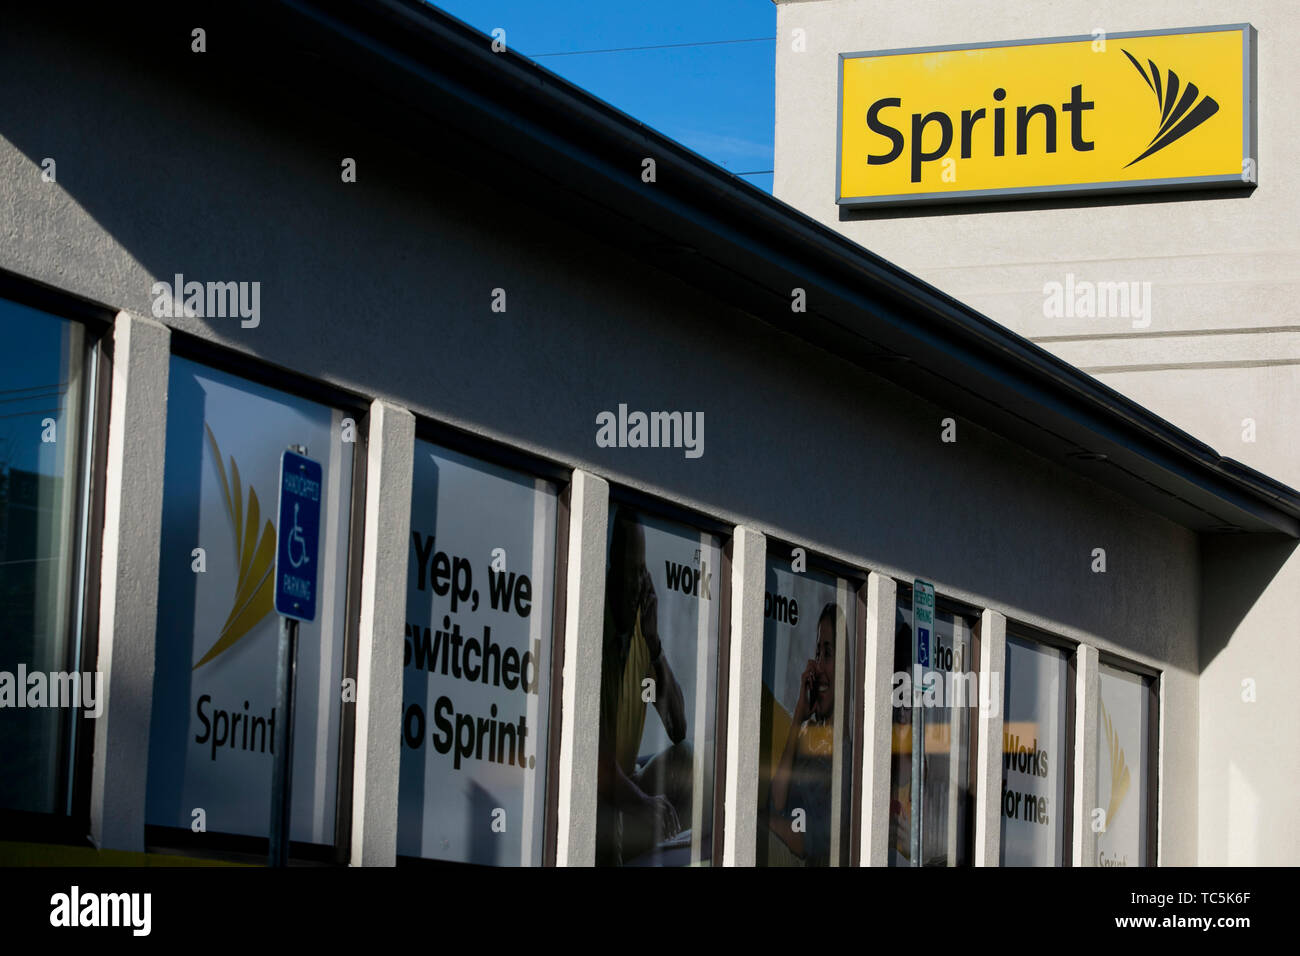 A logo sign outside of a Sprint Corporation retail store location in Martinsburg, West Virginia on June 4, 2019. - Stock Image